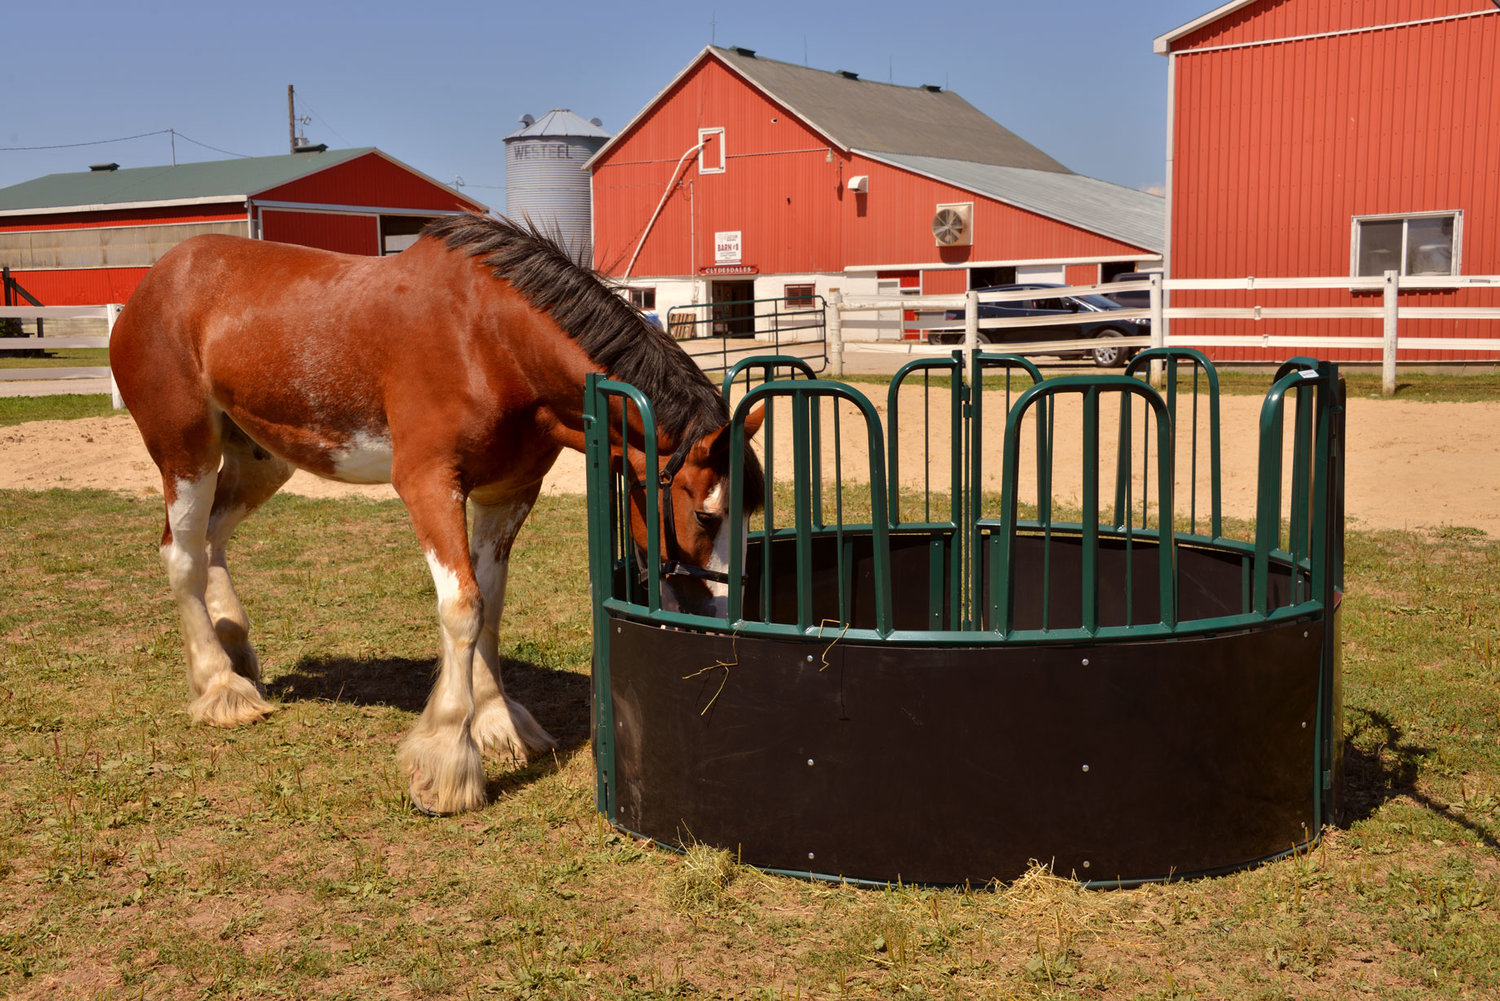 hay horse bp outdoor feeder feeders showthread img page jpg com forums blogspot homemade